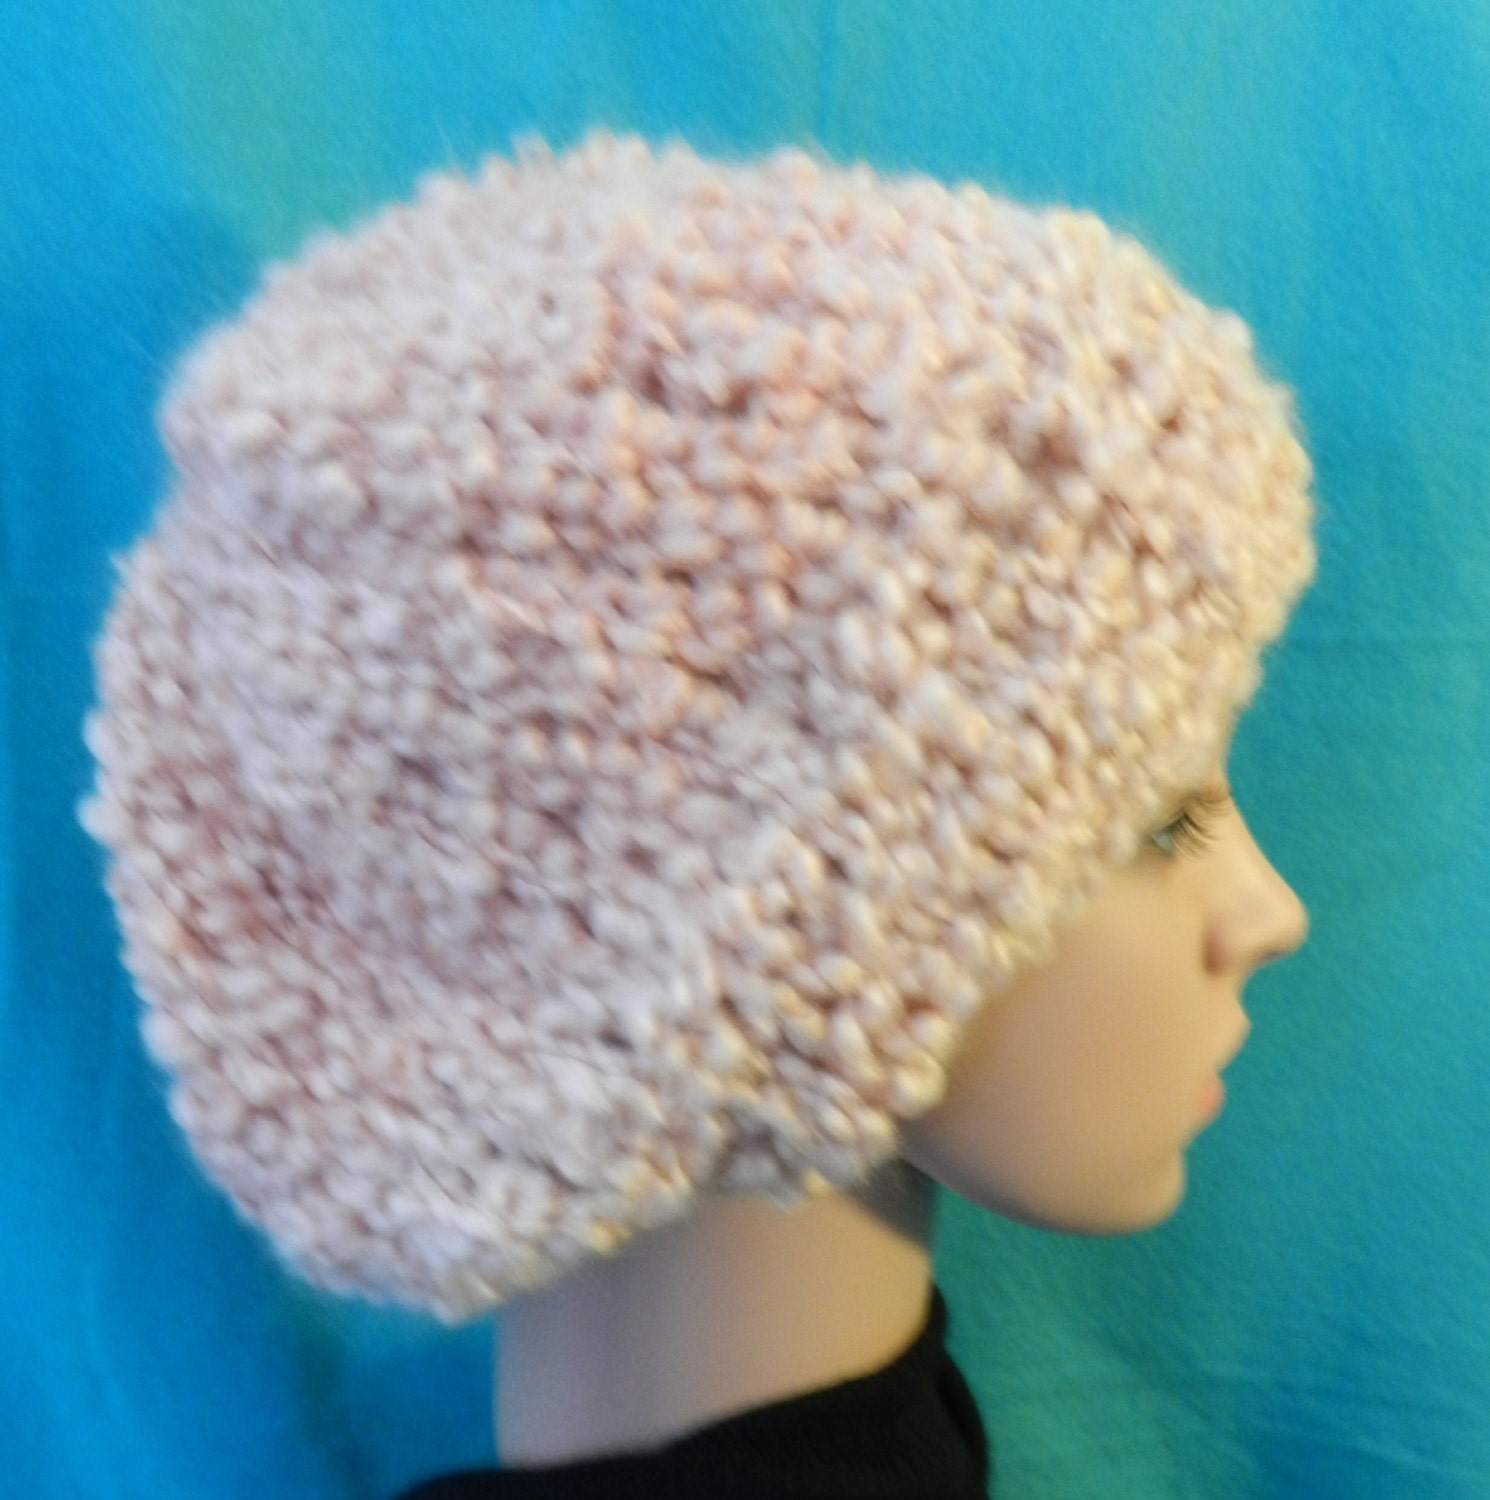 Knitting Patterns Red Heart Light Lofty : Cream Light and Lofty Chunky Knitted Slouchy Bulky Hat ET